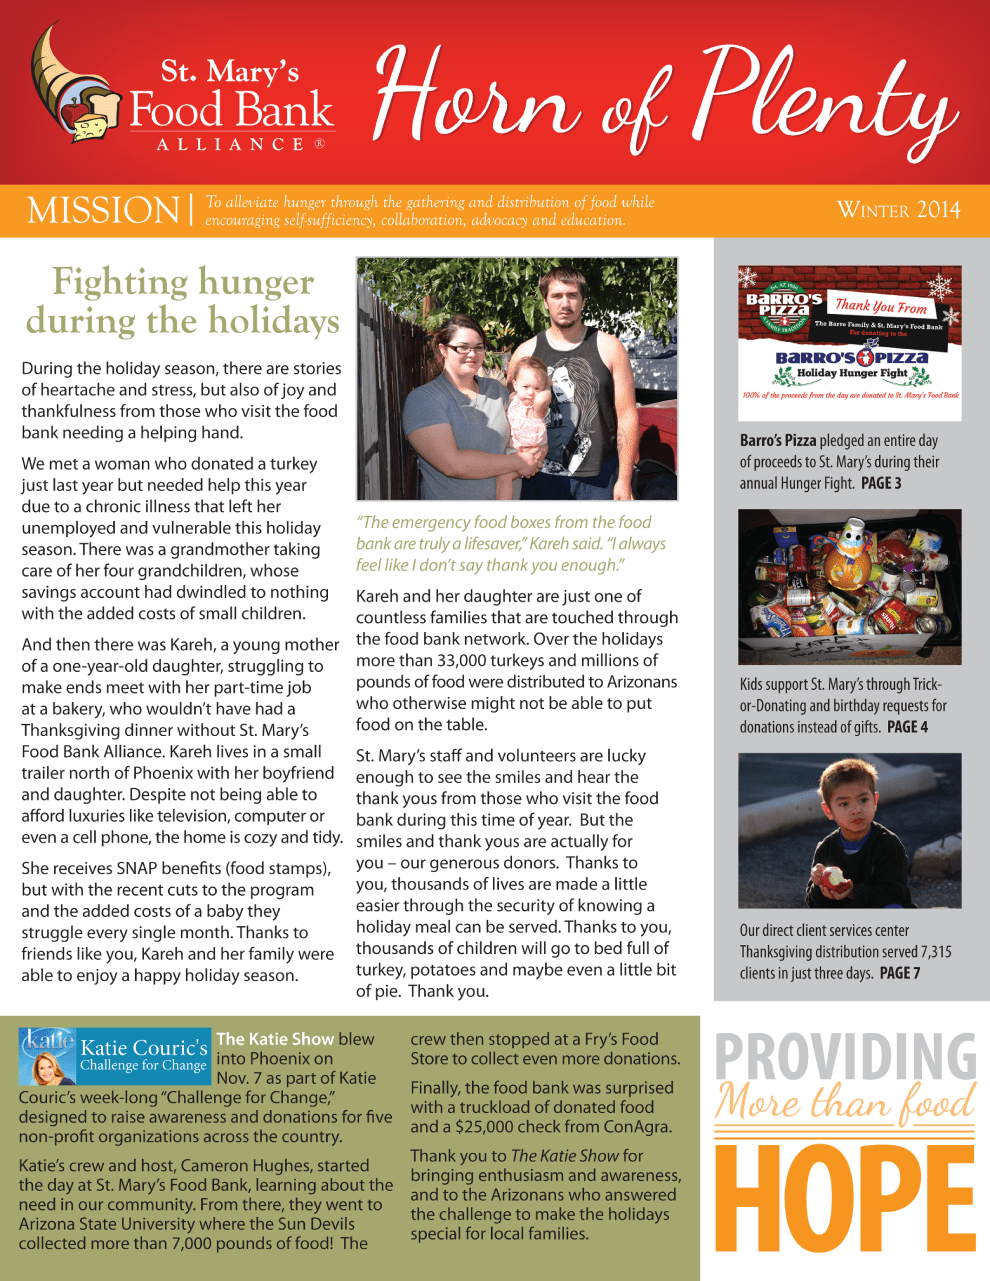 Horn of Plenty Newsletter Winter 2014